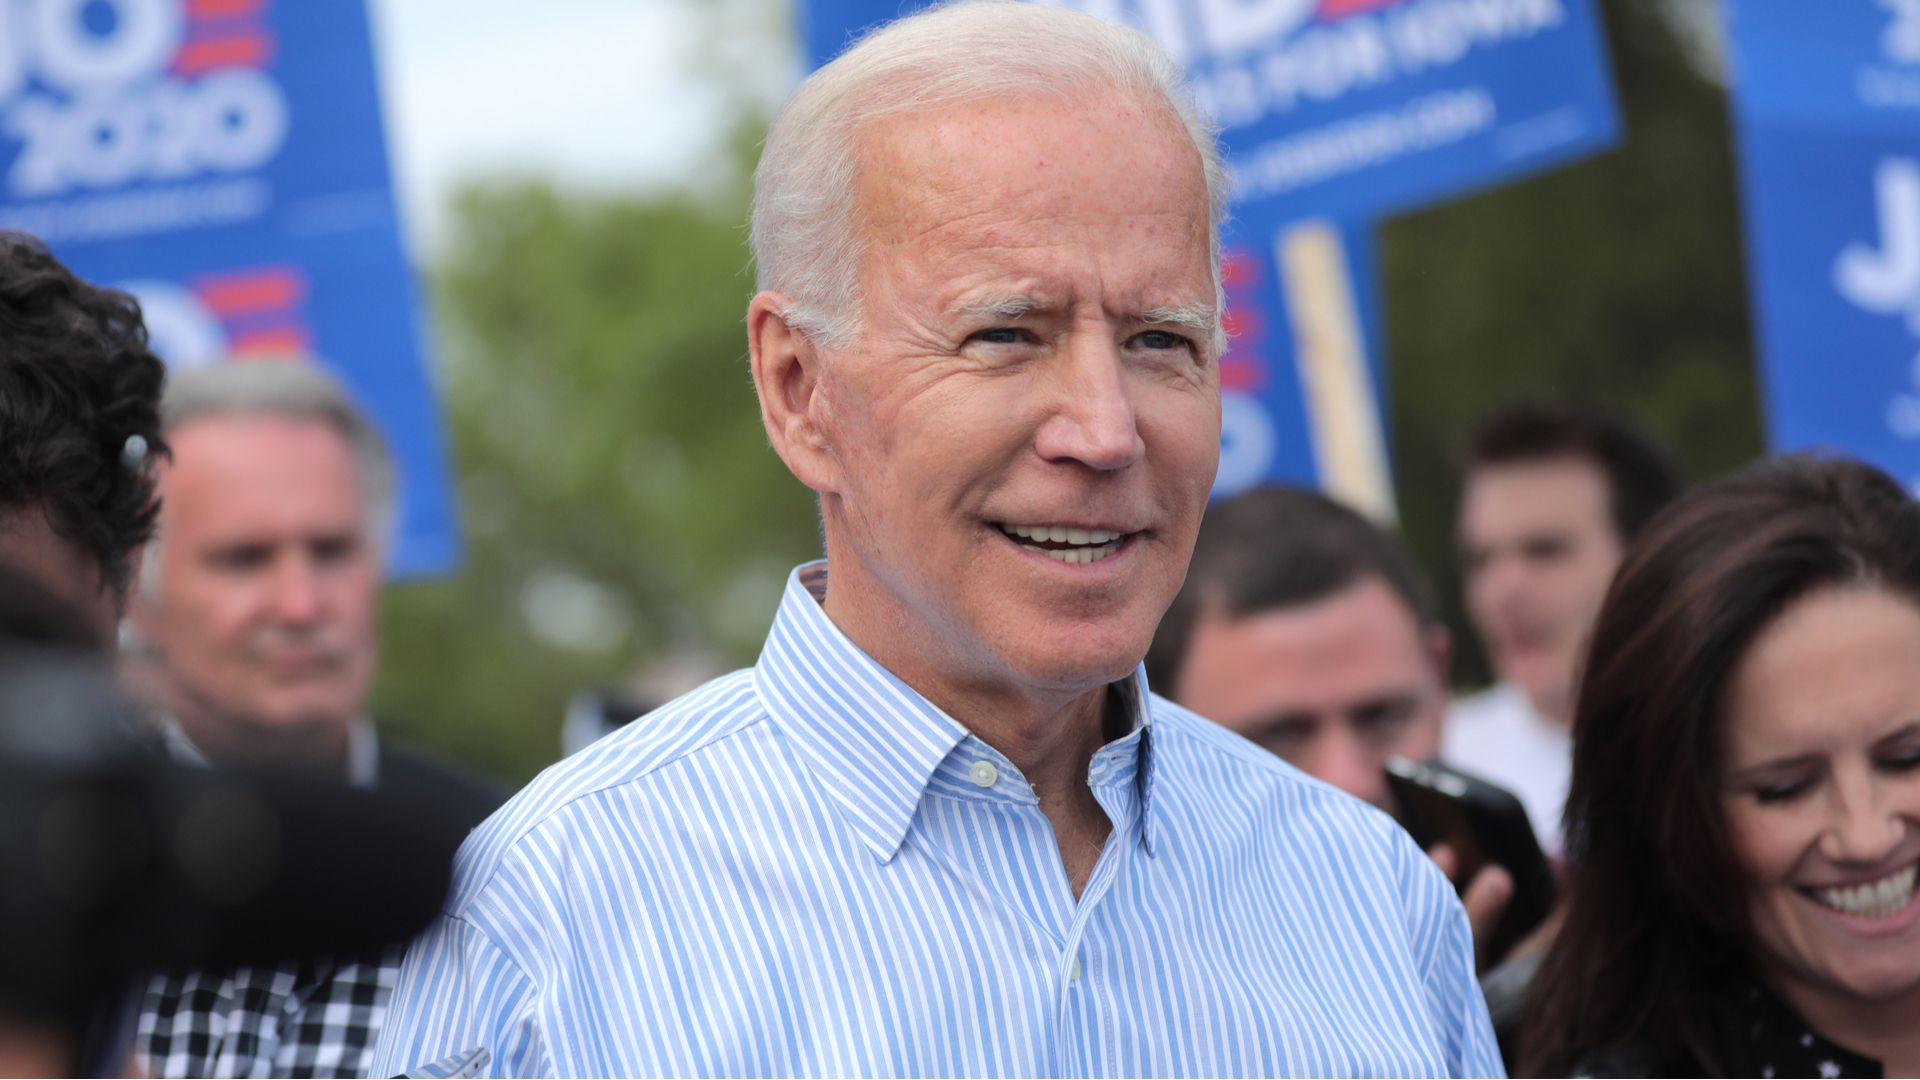 Peoria,AZ - May 25 2020: Former Vice President of the United States Joe Biden walking with supporters at a pre-Wing Ding march from Molly McGowan Park in Clear Lake, Iowa.